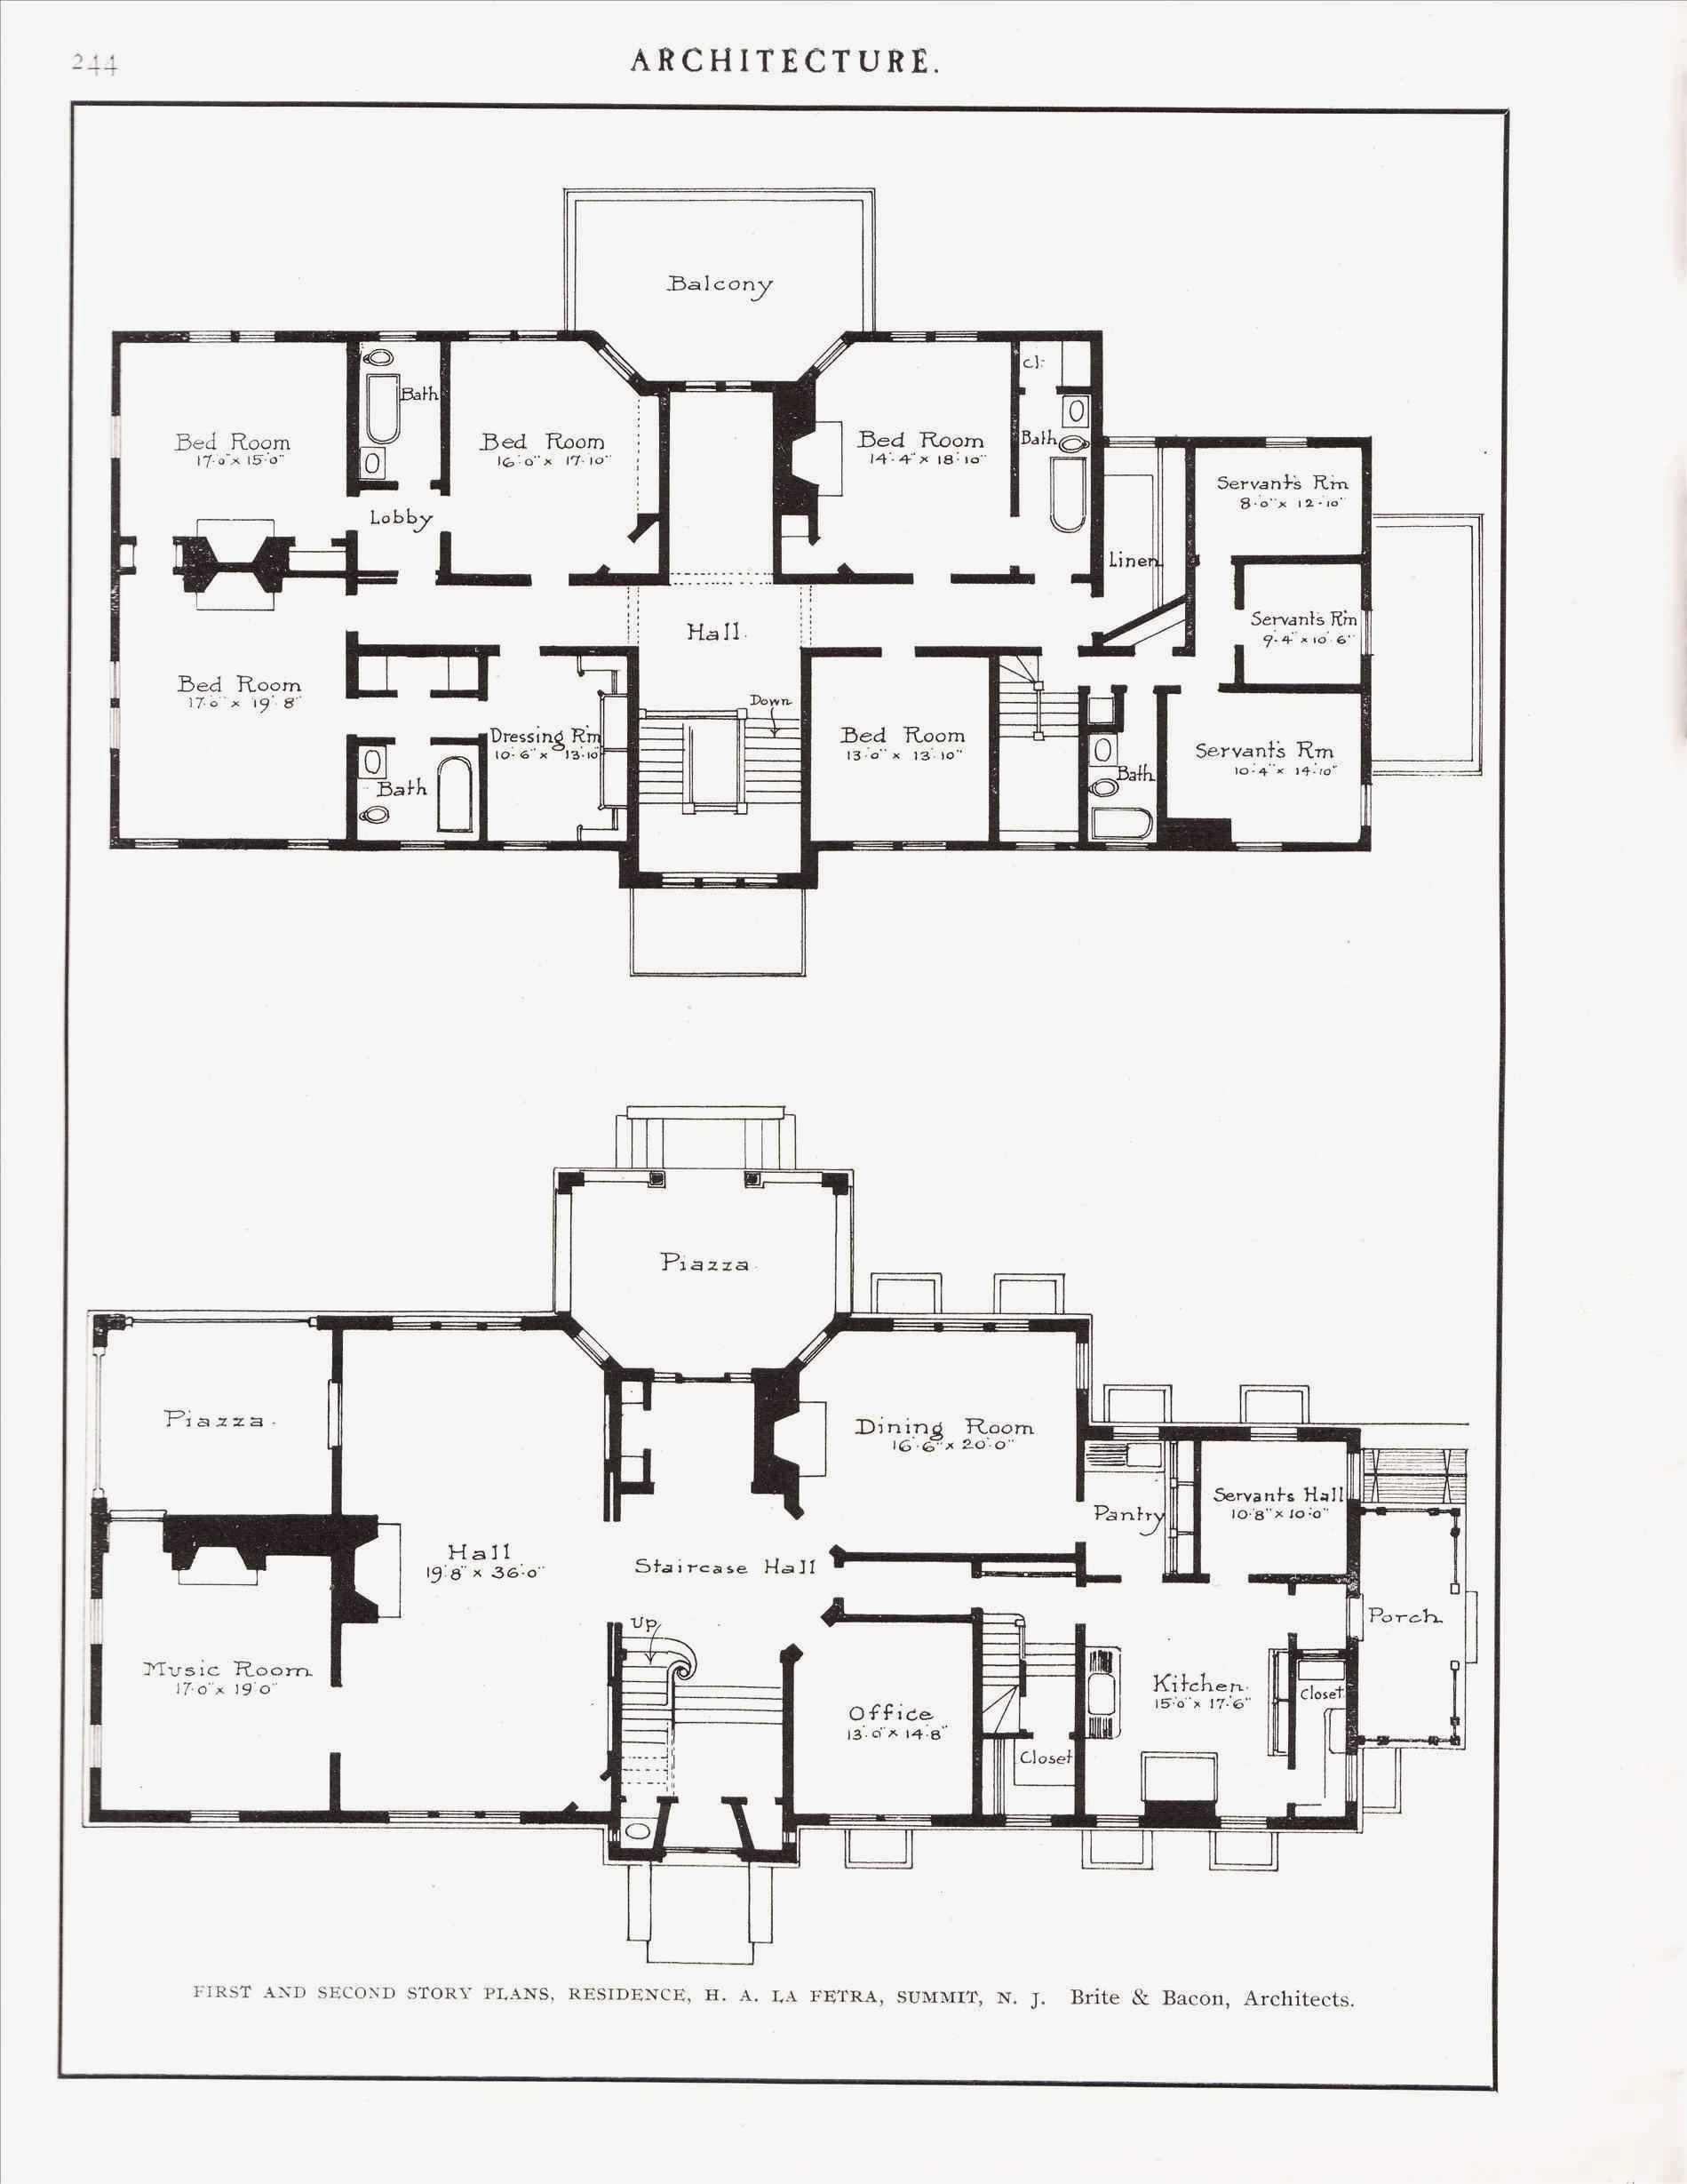 house plan drawing software free lovely draw house plan free luxury bathroom design software ifttt rhpinterest floor of house plan drawing software free